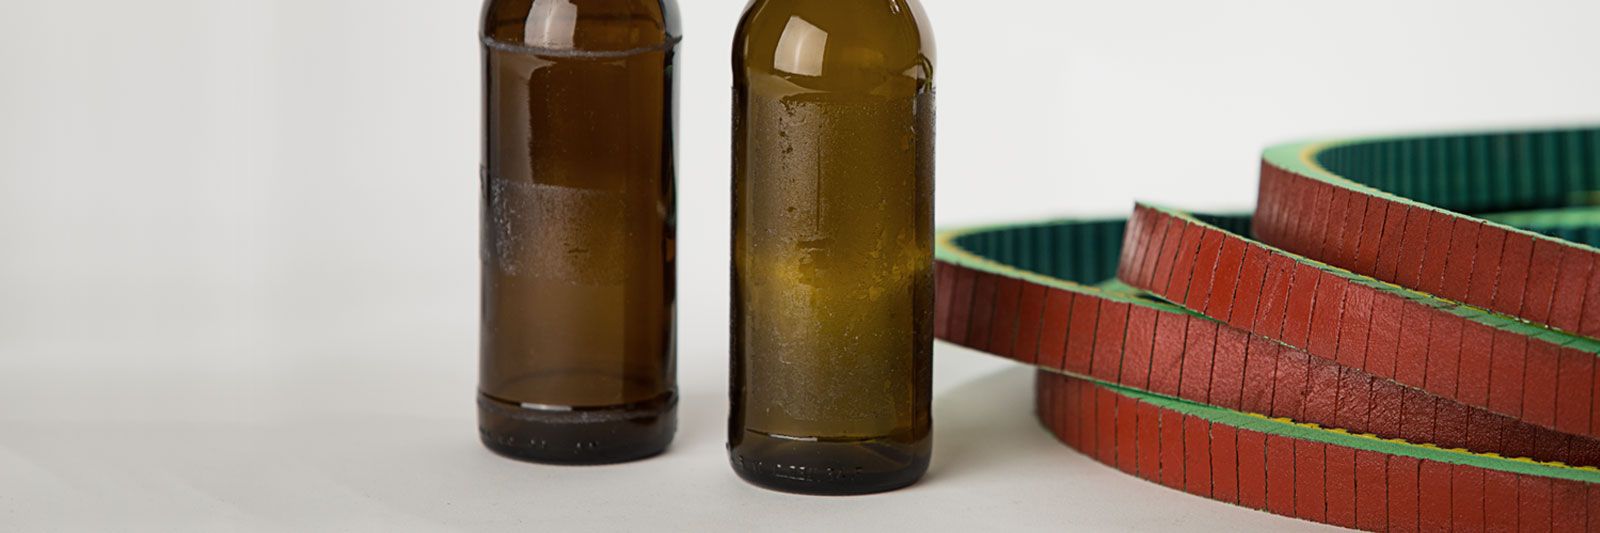 bottles-silicon-belts-l.jpg